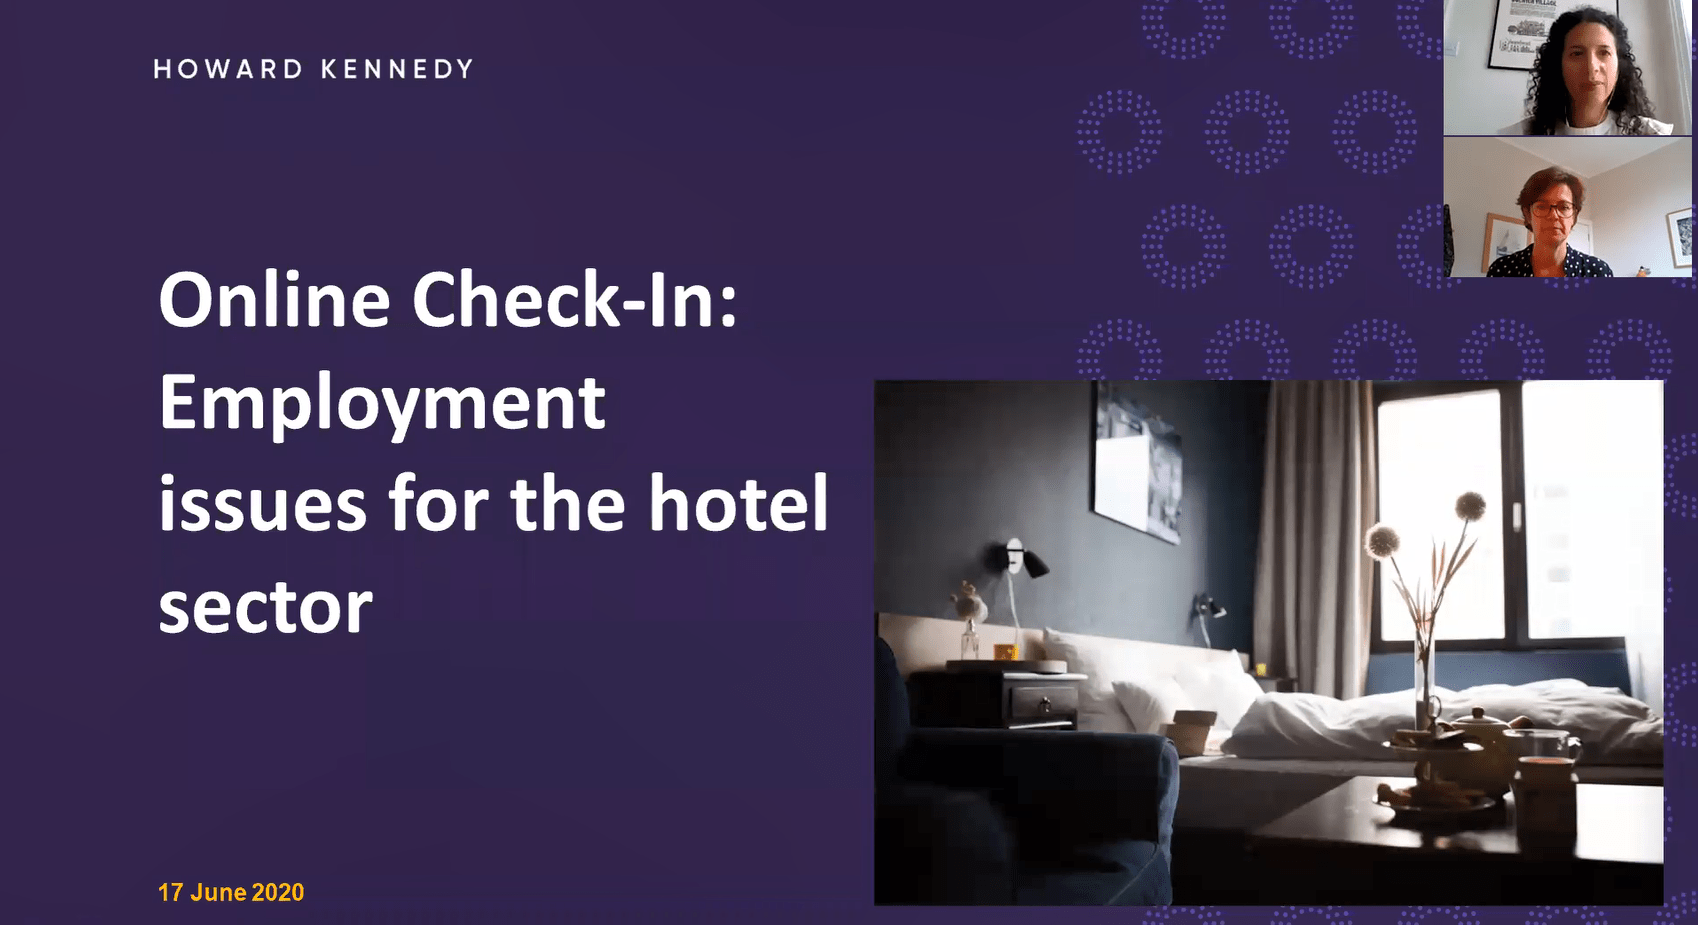 What is next on the agenda Employment considerations for the hotel industry.